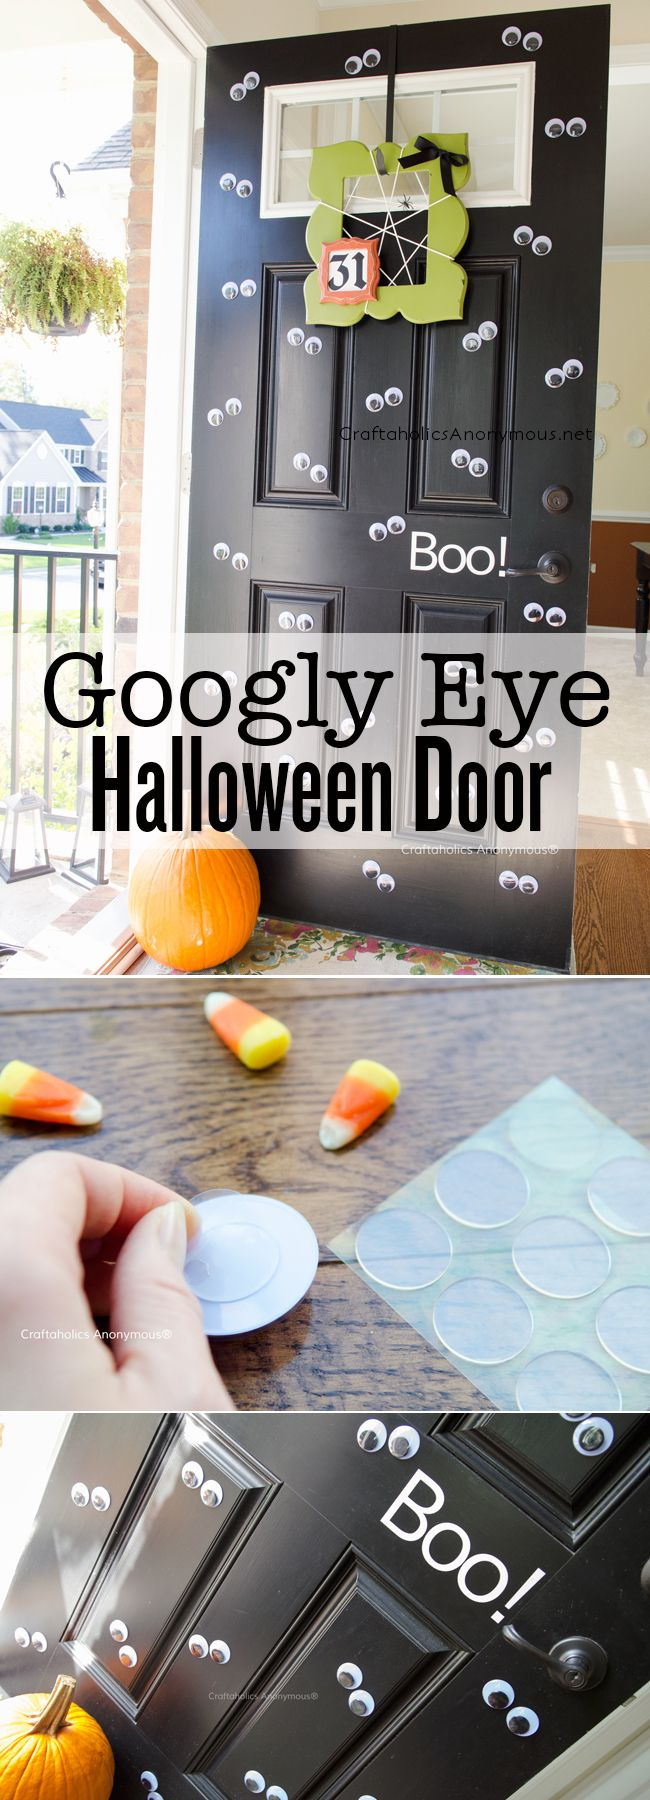 Googly Eye Halloween Door. Easy last minute Halloween decor for your front door- add a bunch of Googly eyes! Click for tips on how to reuse the wiggle eyes year after year. MichaelsMakers Craftaholics Anonymous